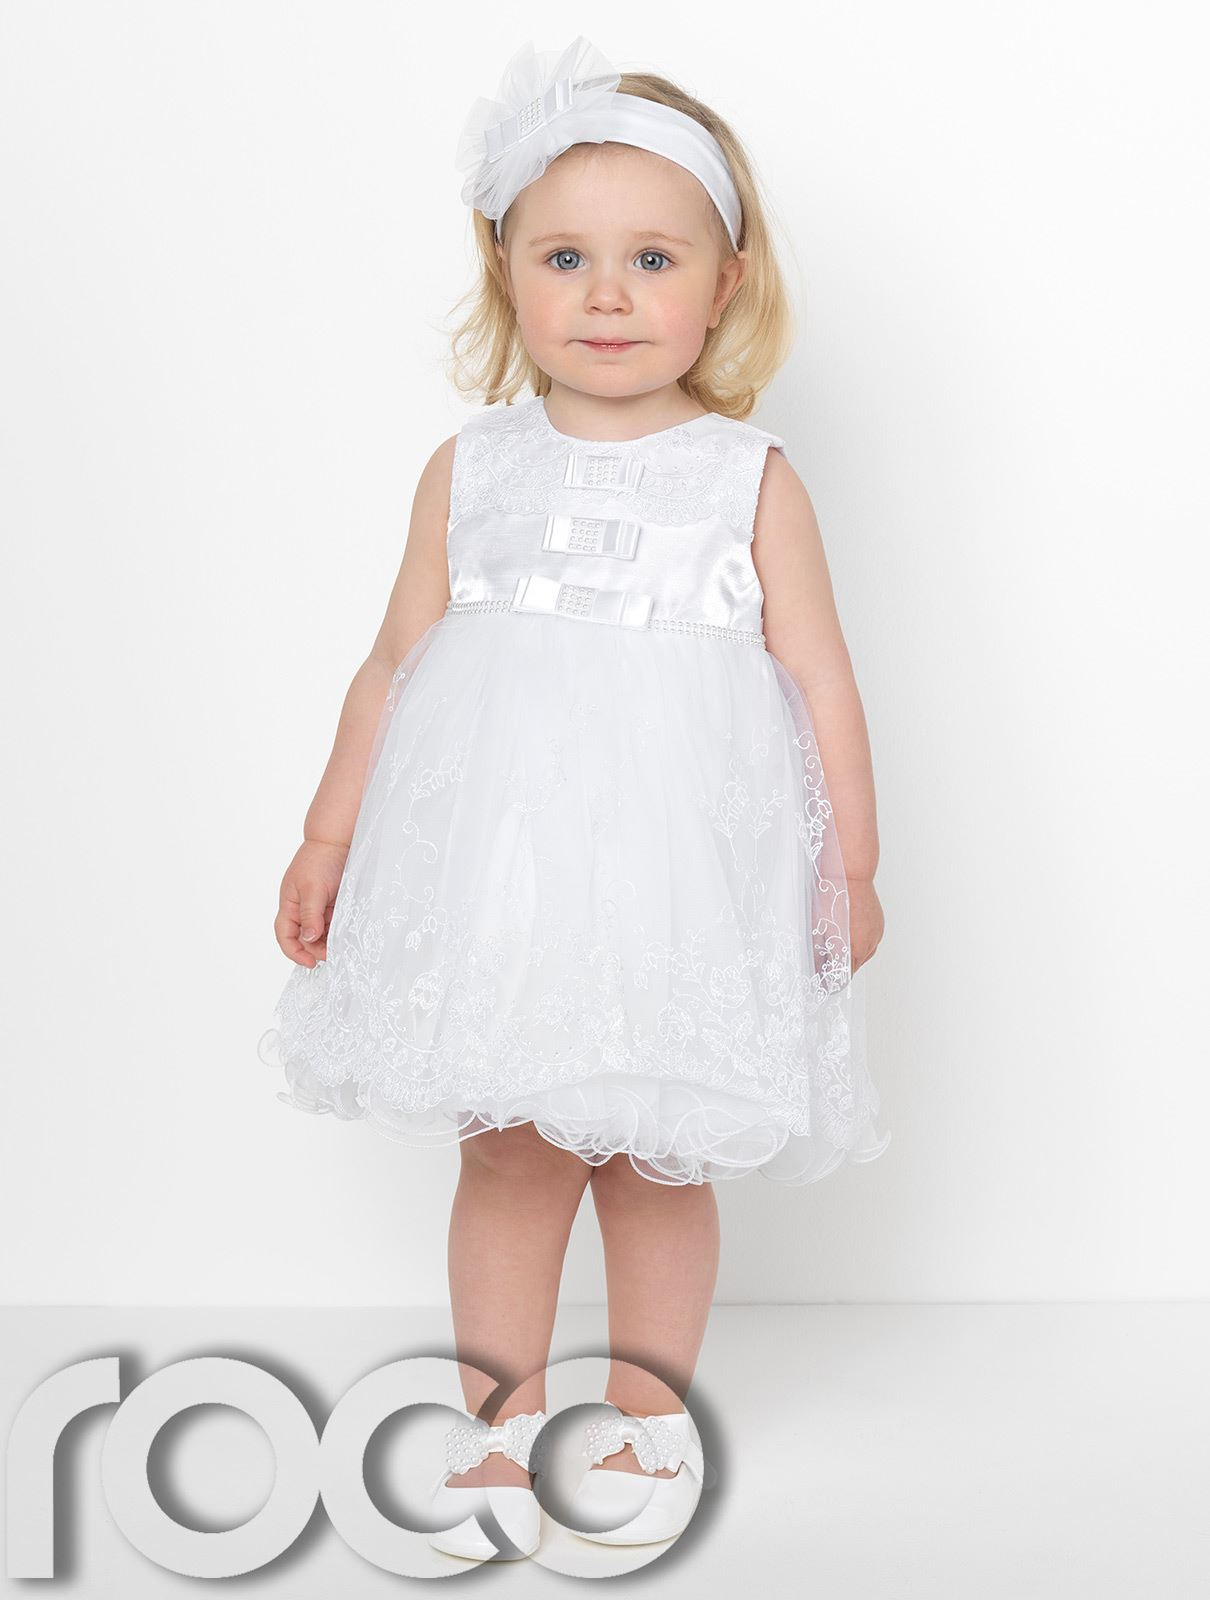 Baby Girls Dresses, Flower Girl Dresses, Christening ...